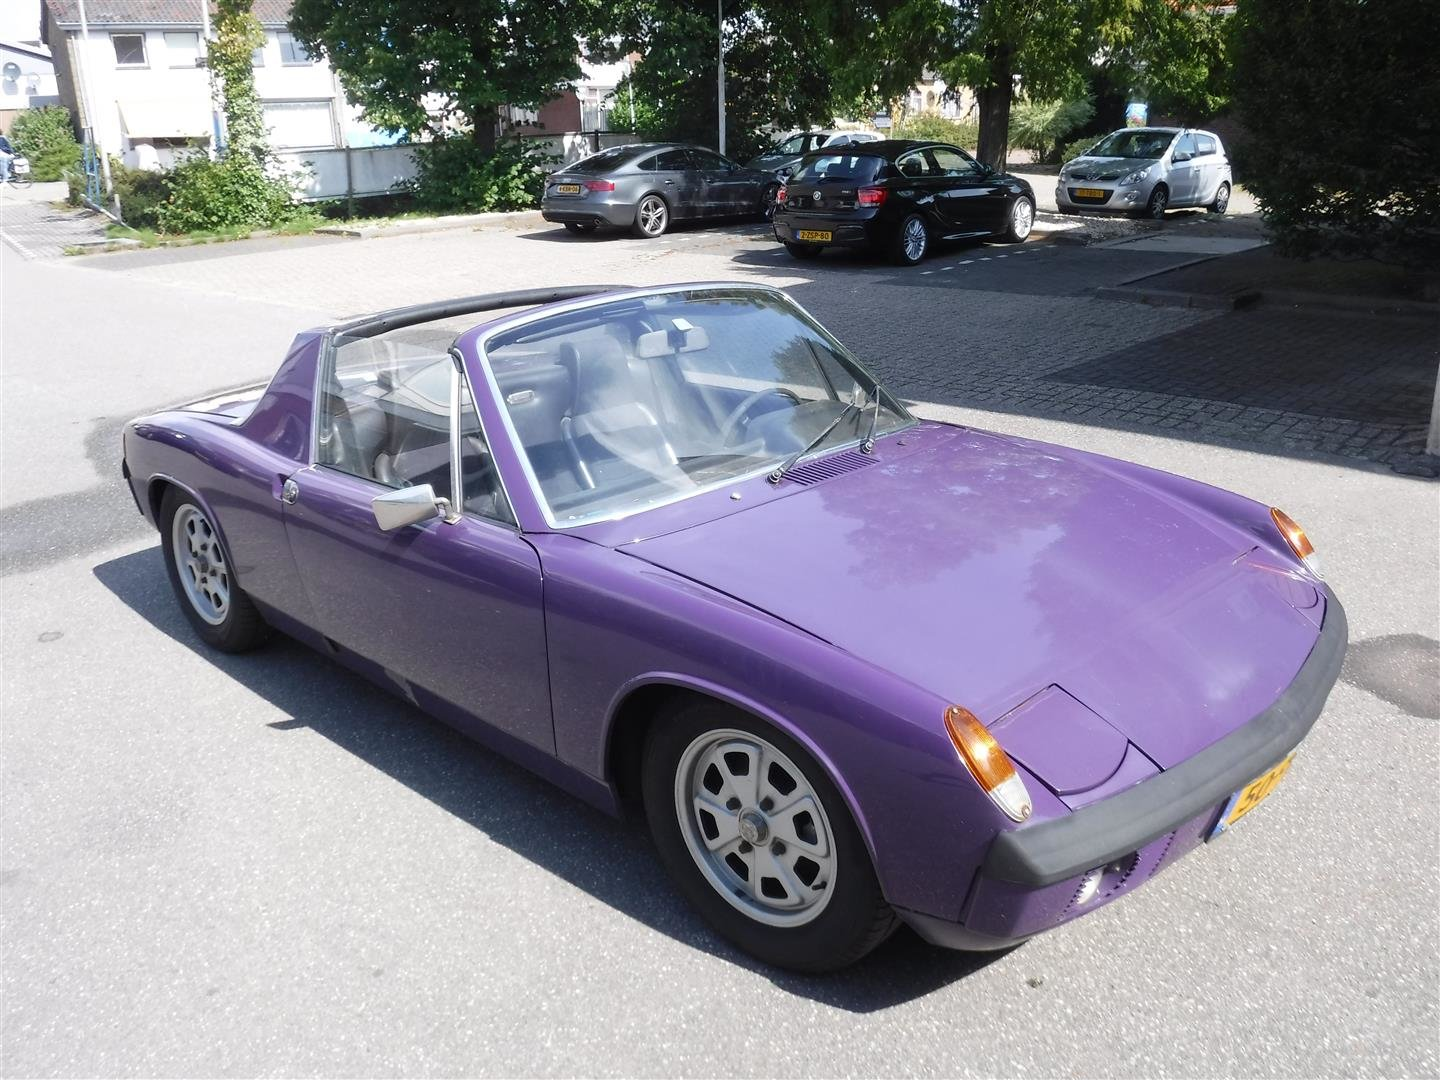 1973 Porsche 914 2.0 purple! For Sale (picture 1 of 6)